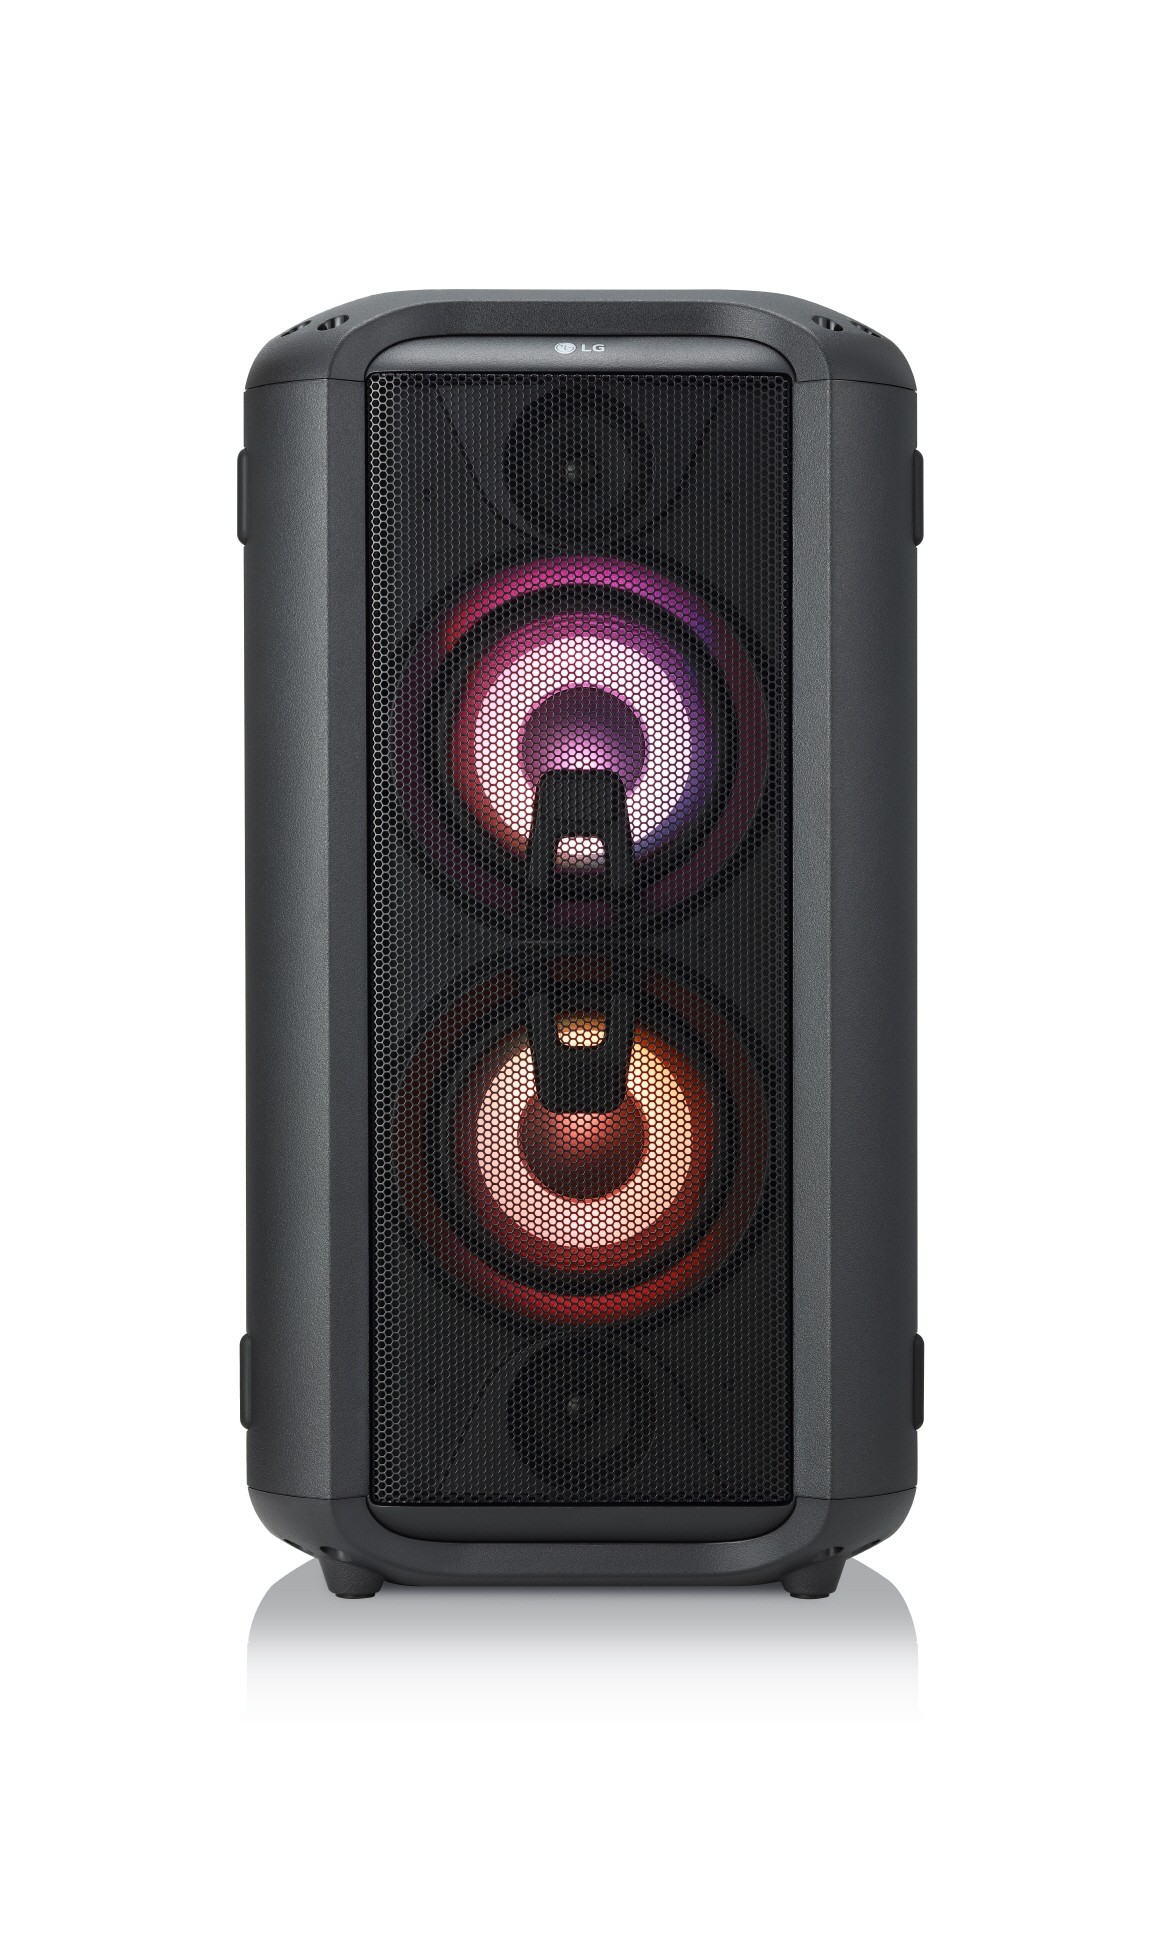 A front view of LG XBOOM model RL4